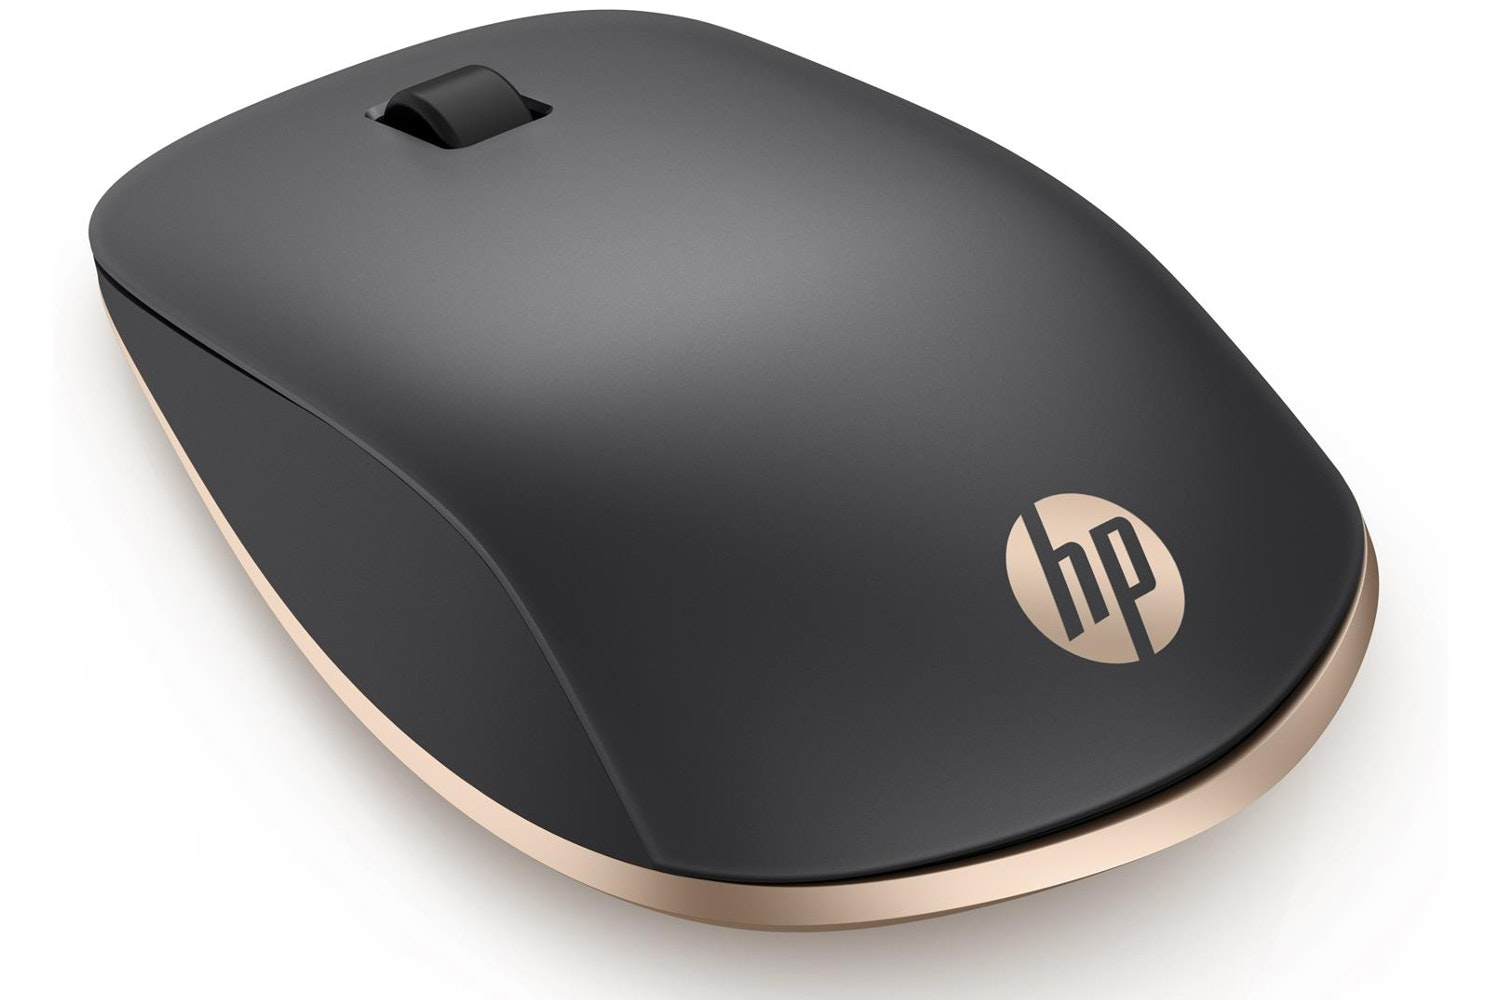 HP Premium Silver Bluetooth Mouse